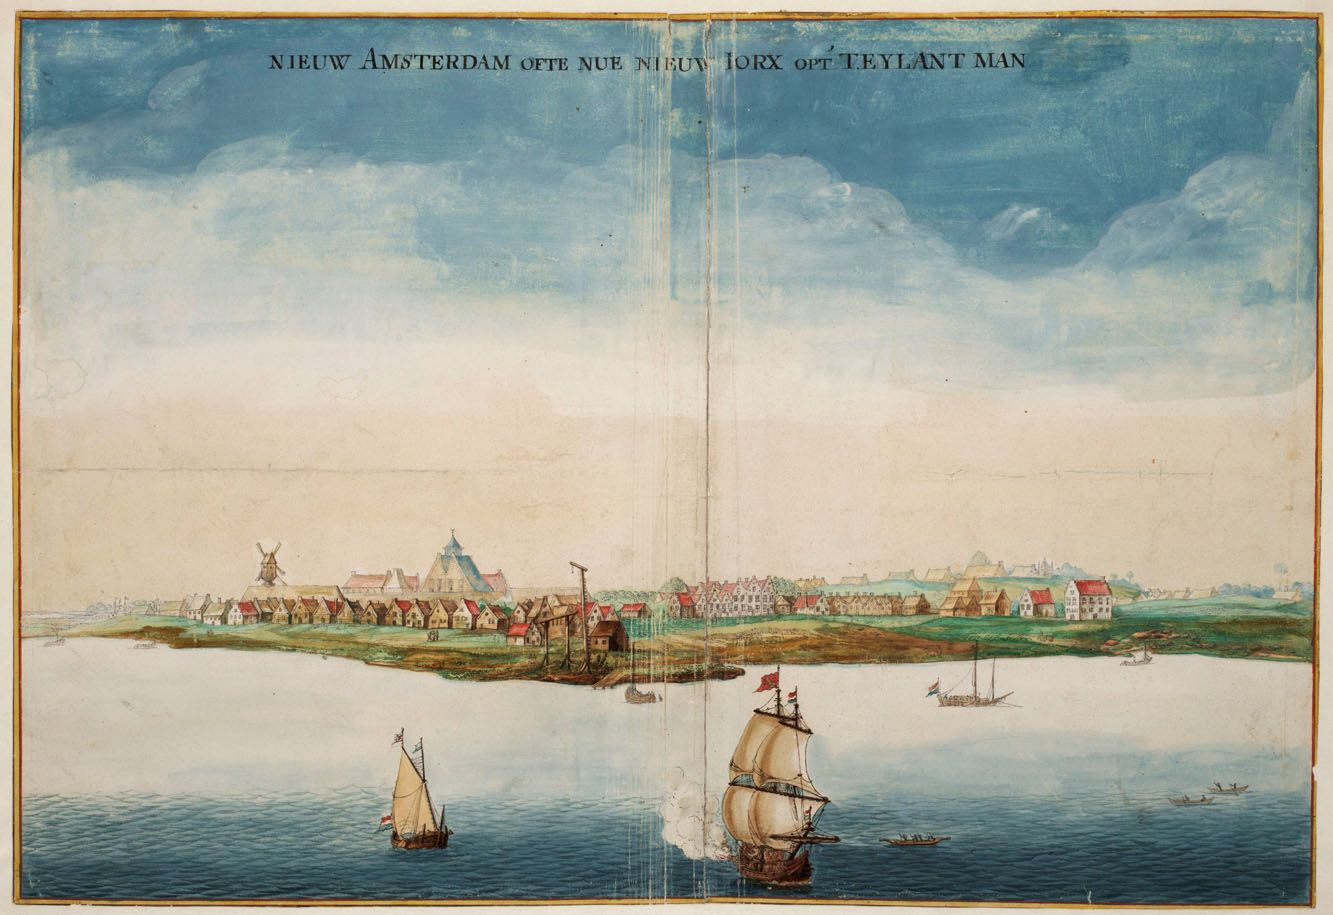 Image from http://www.localarchives.org/nahc/images/NewAmsterdam_Vingboons_fullres.jpg.